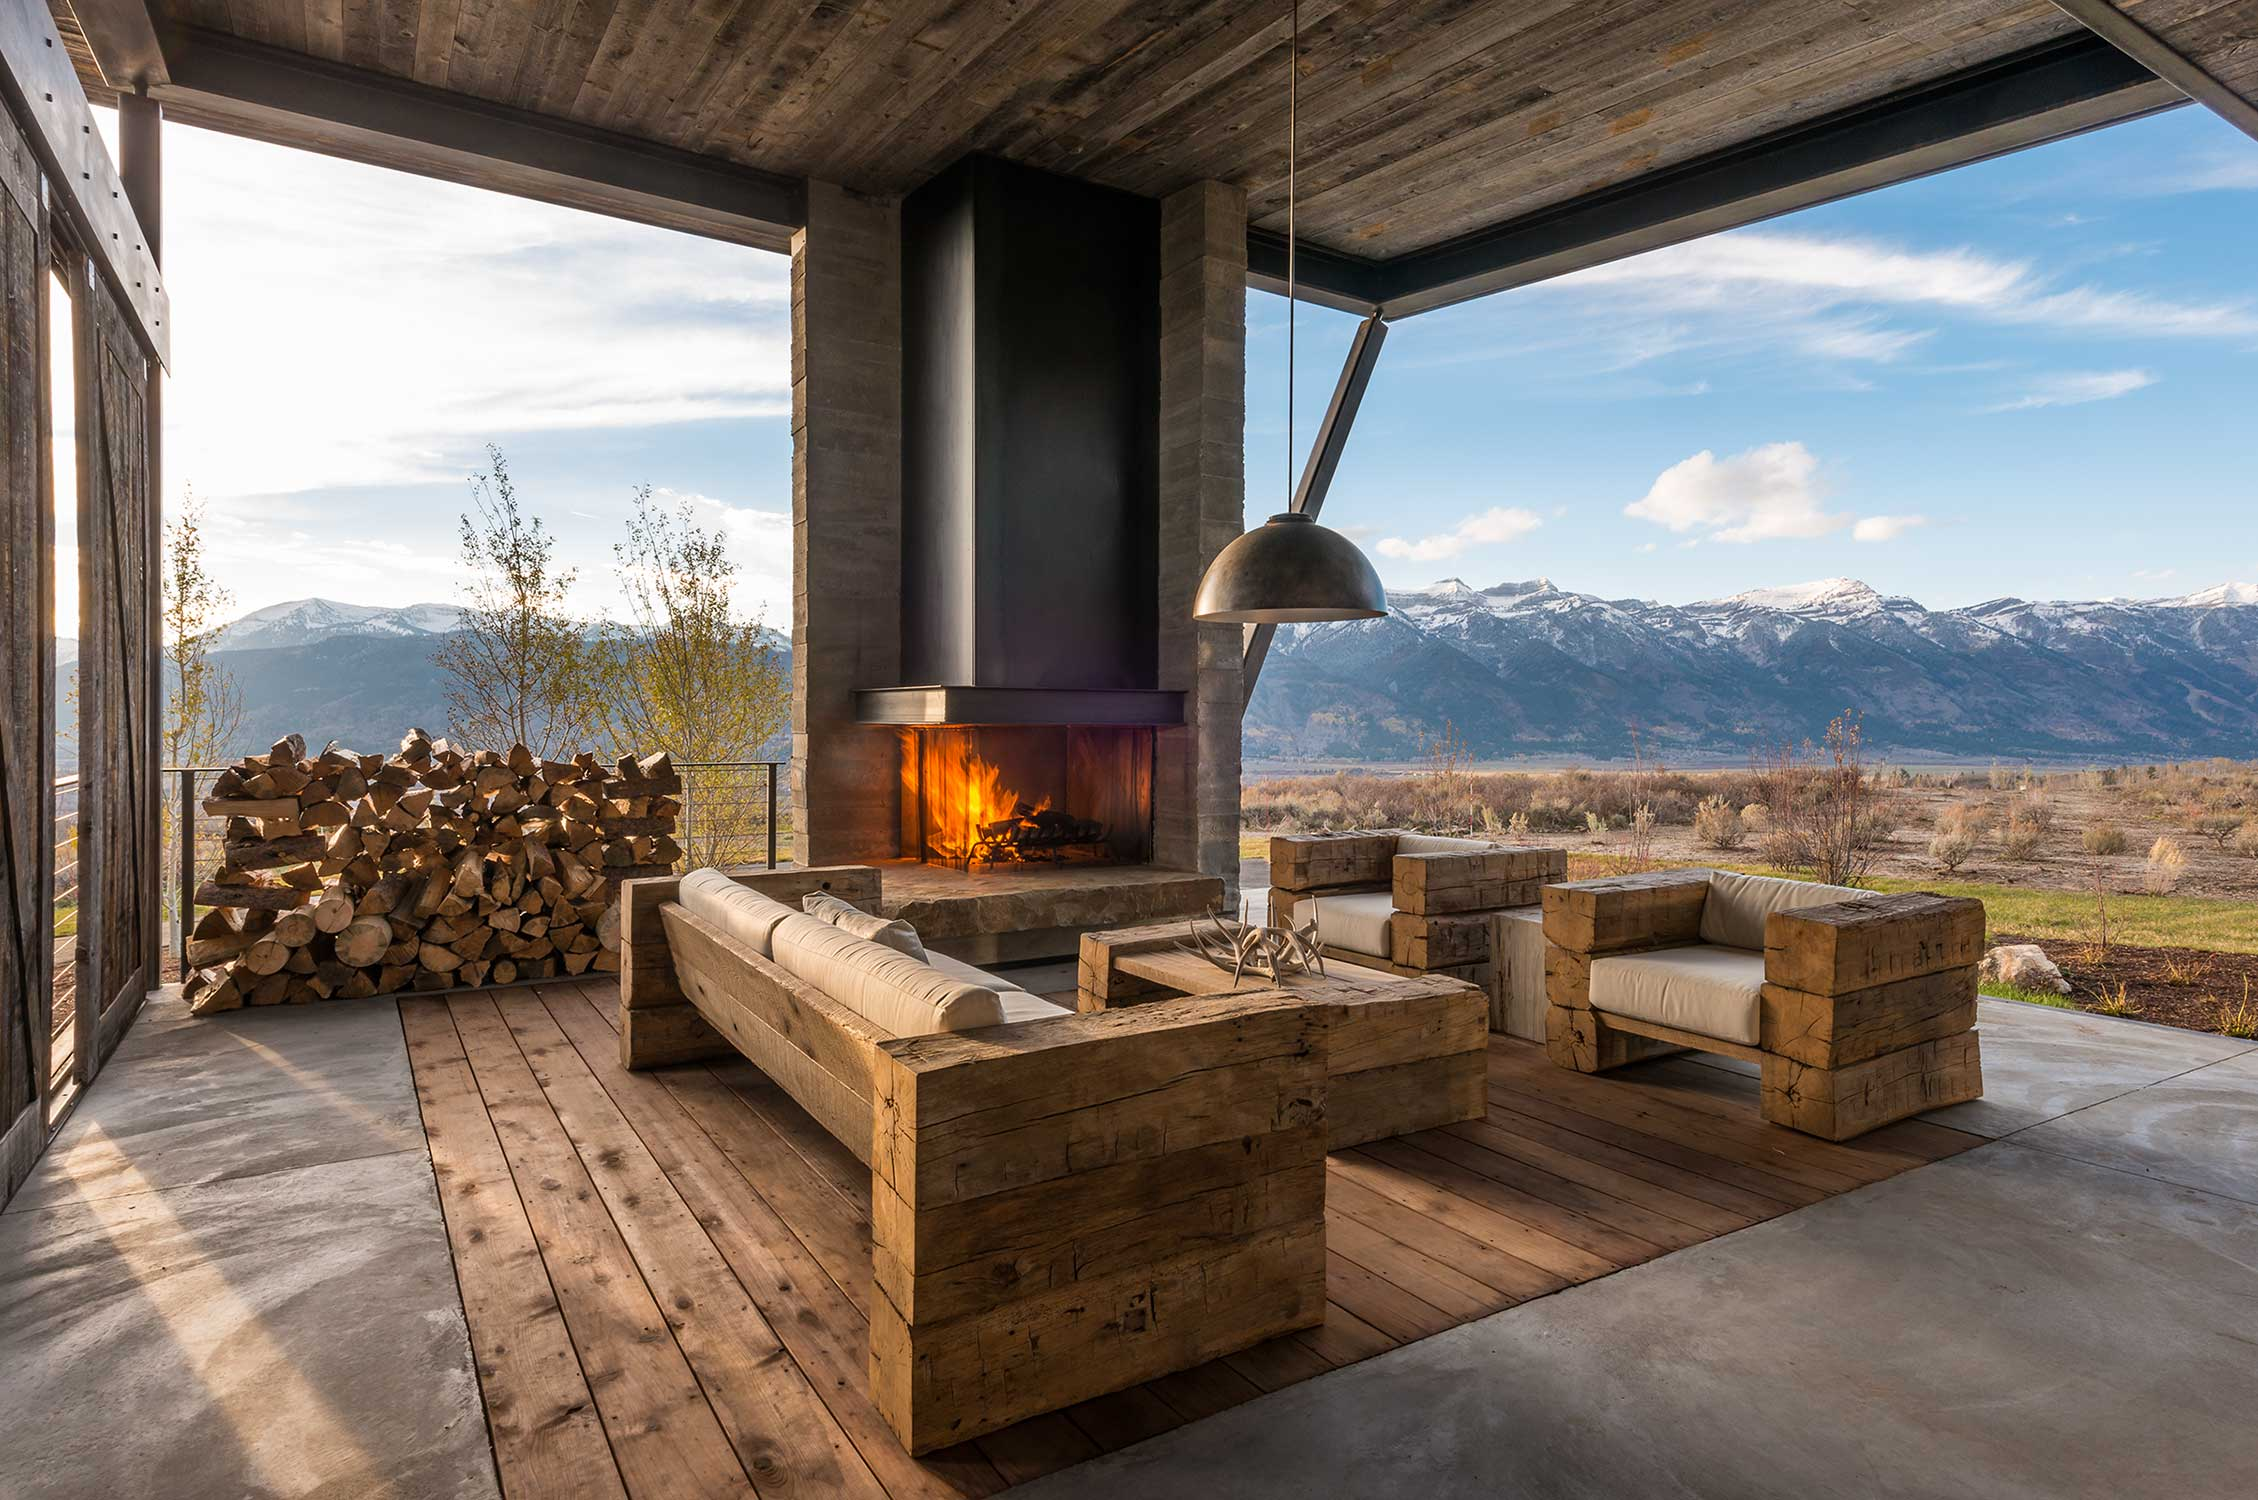 Indoors meets outdoors in Jackson Hole, Wyoming